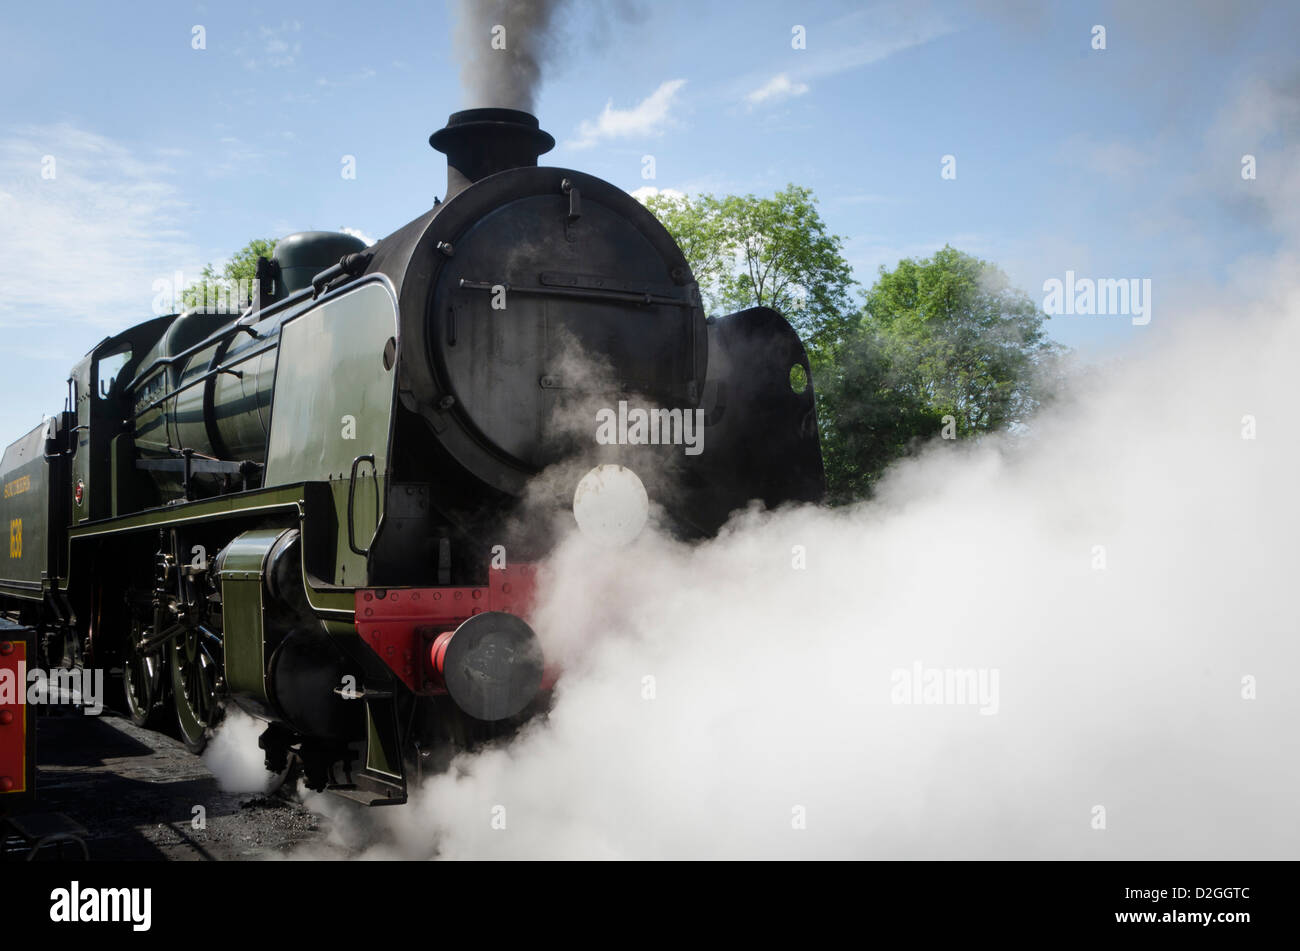 Maunsell U Class steam engine at Bluebell Railway, Sheffield Park, near Uckfield, East Sussex - Stock Image